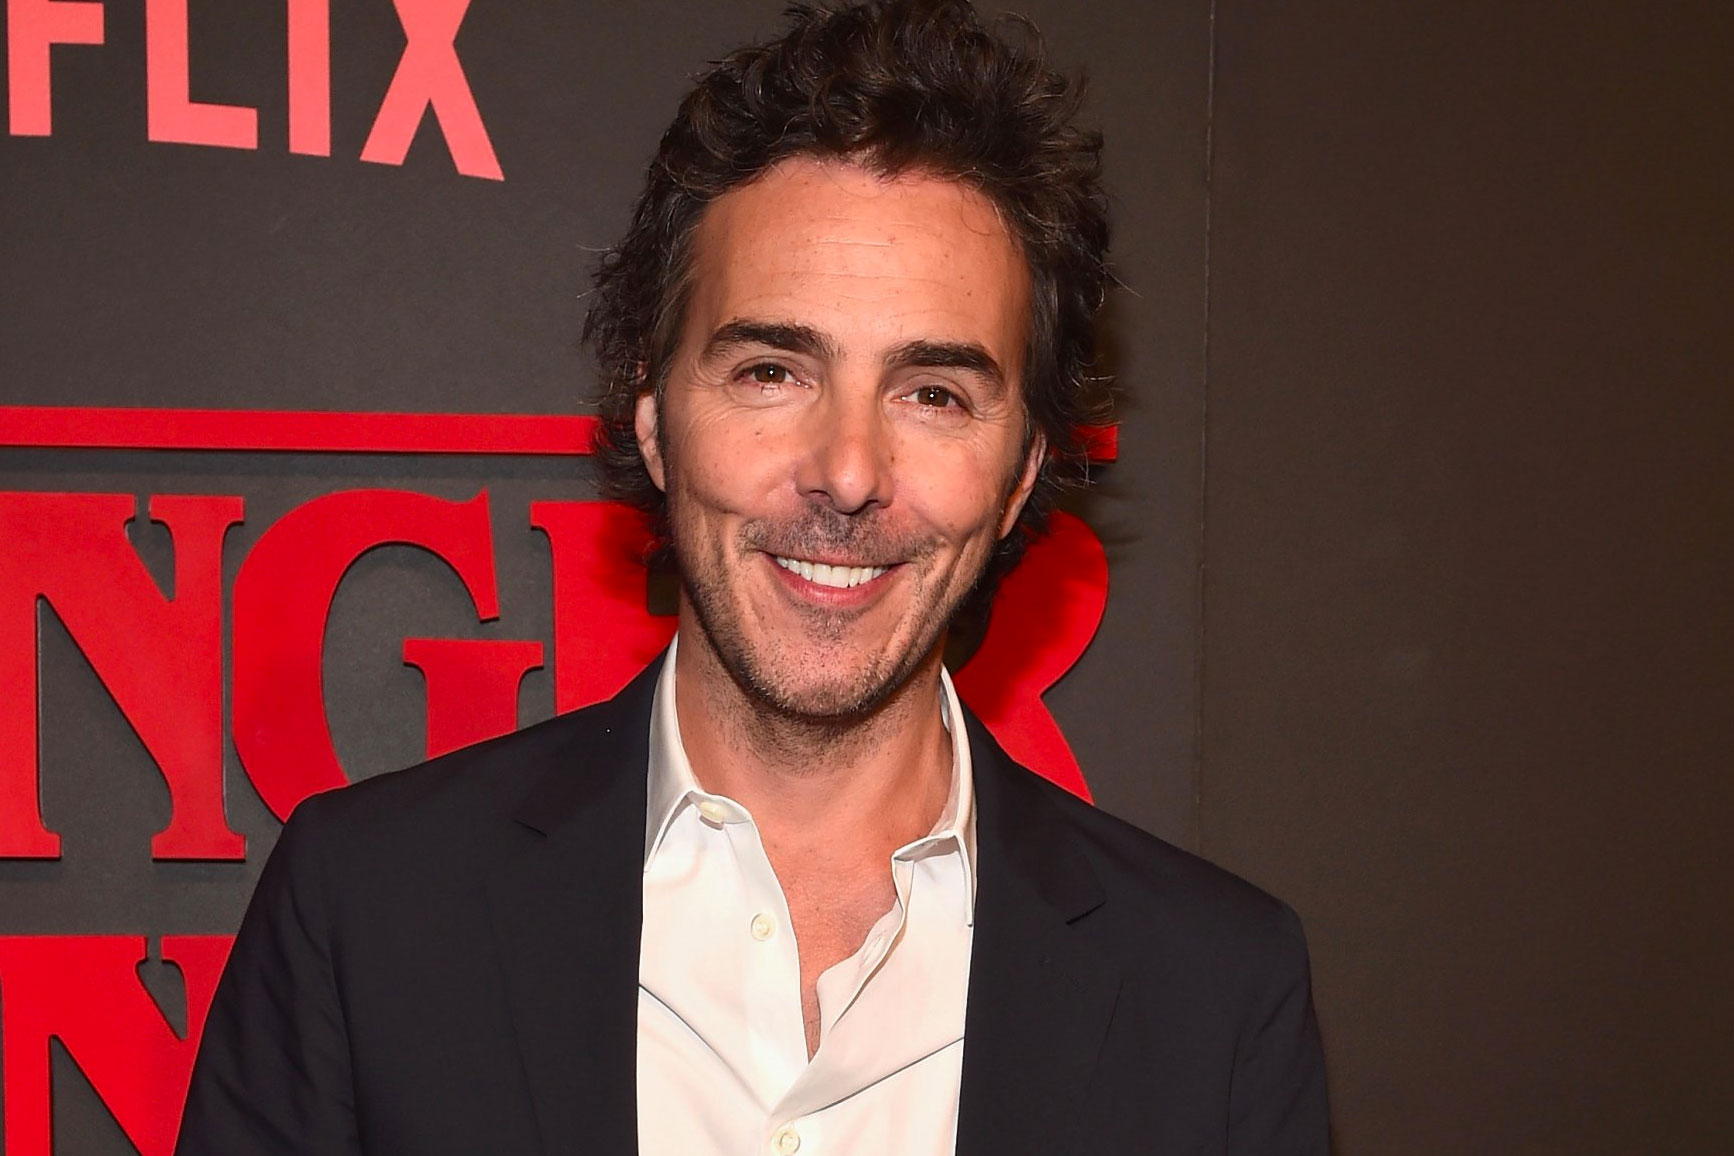 'Stranger Things' Director Shawn Levy to Helm 'Uncharted' Movie